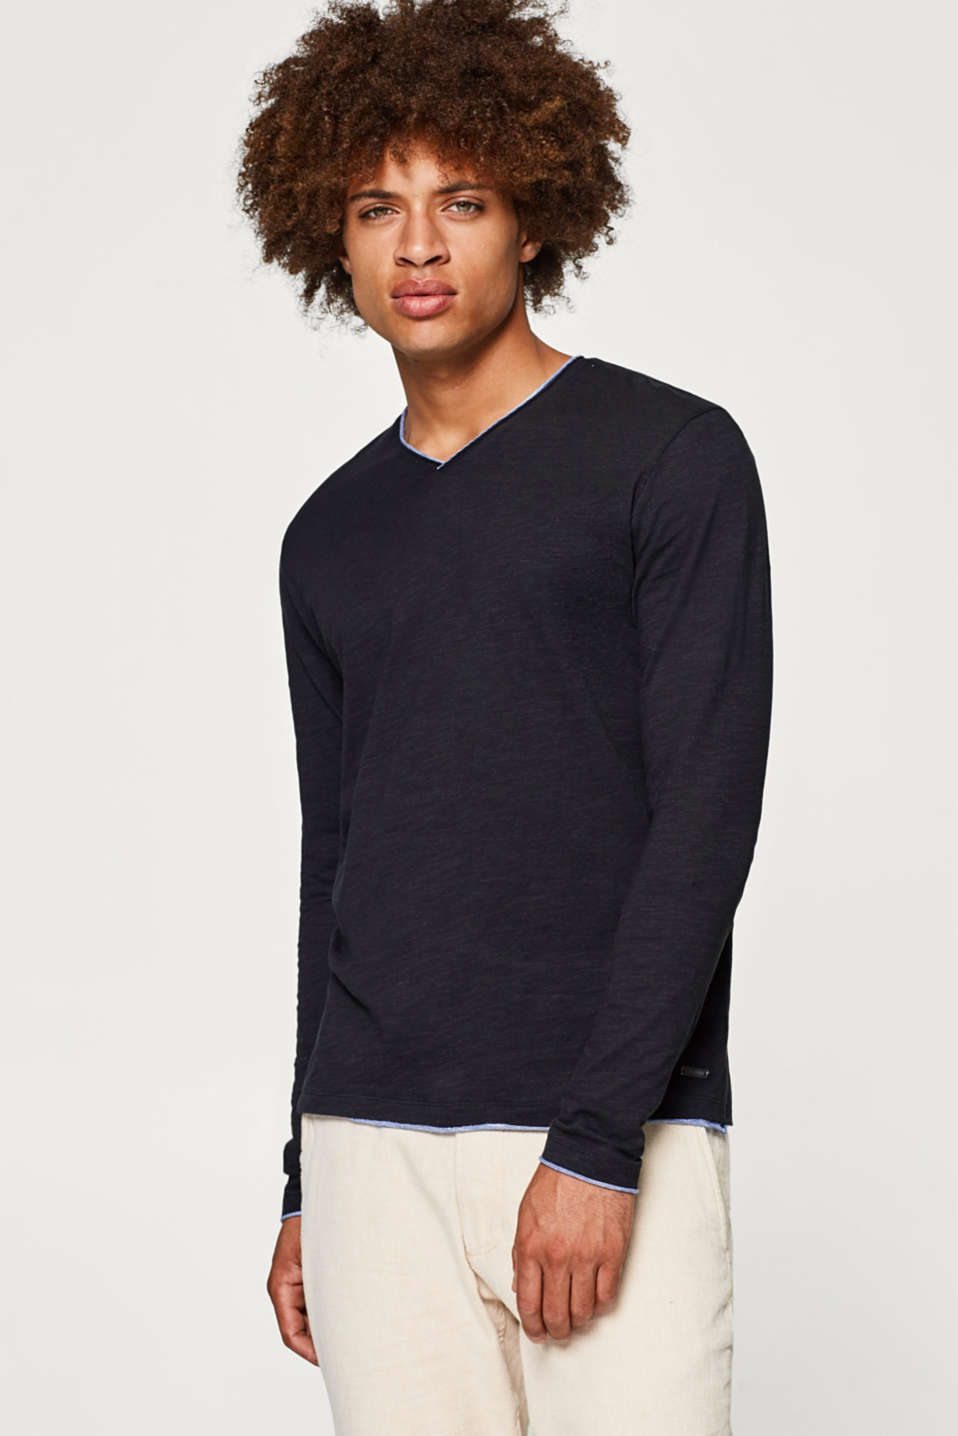 edc - Jersey long sleeve top with a trim, 100% cotton